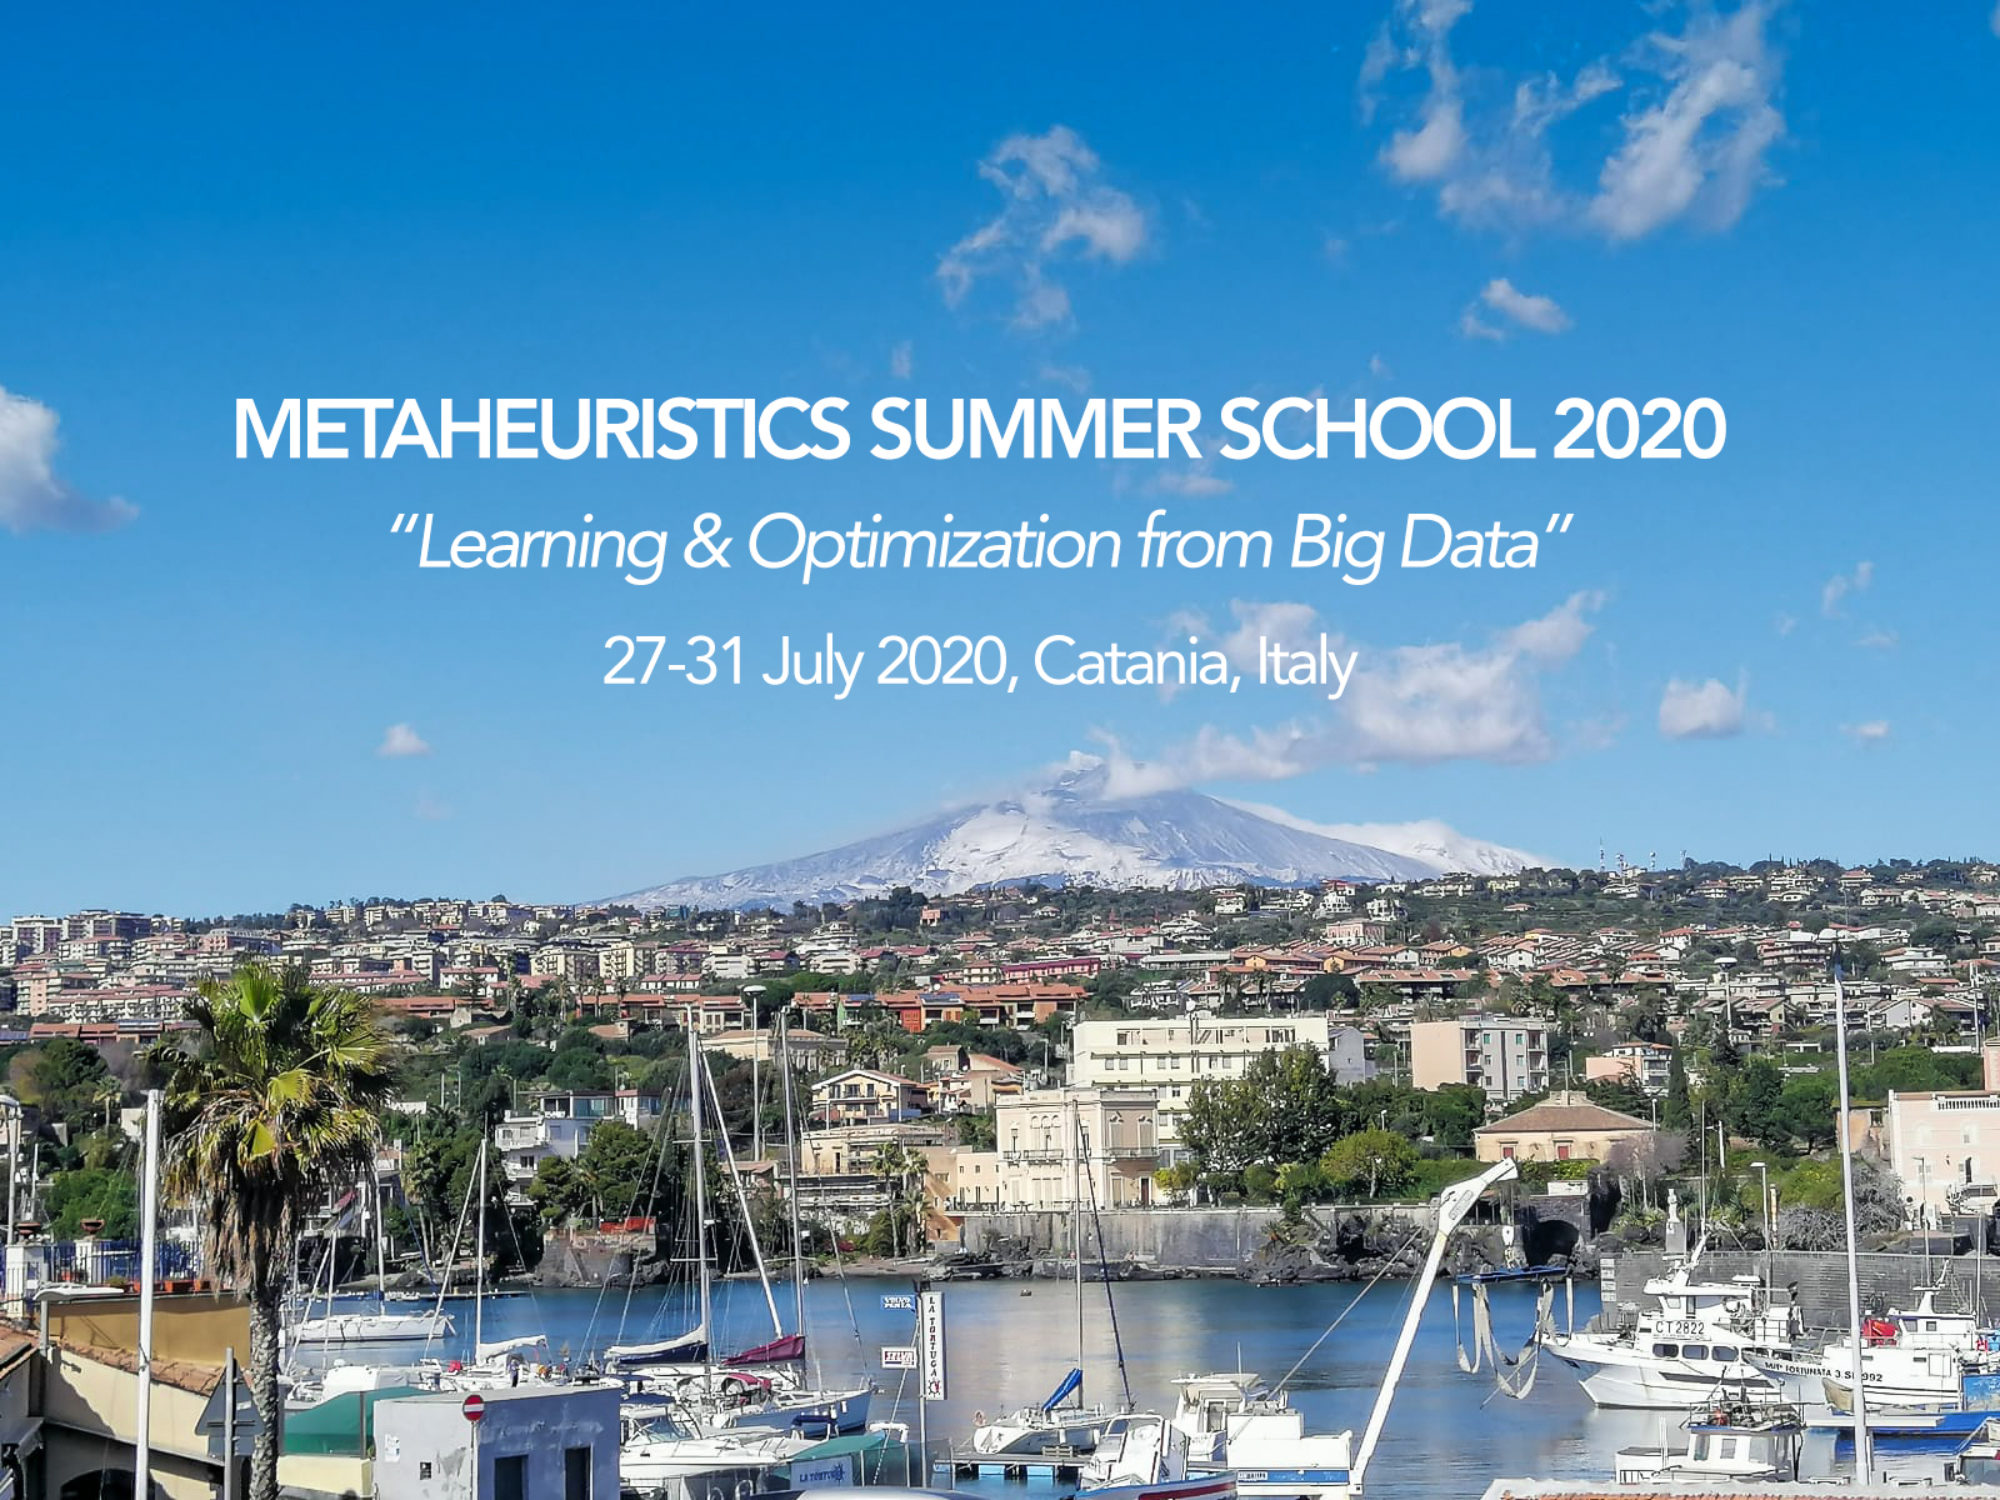 Metaheuristics Summer School 2020